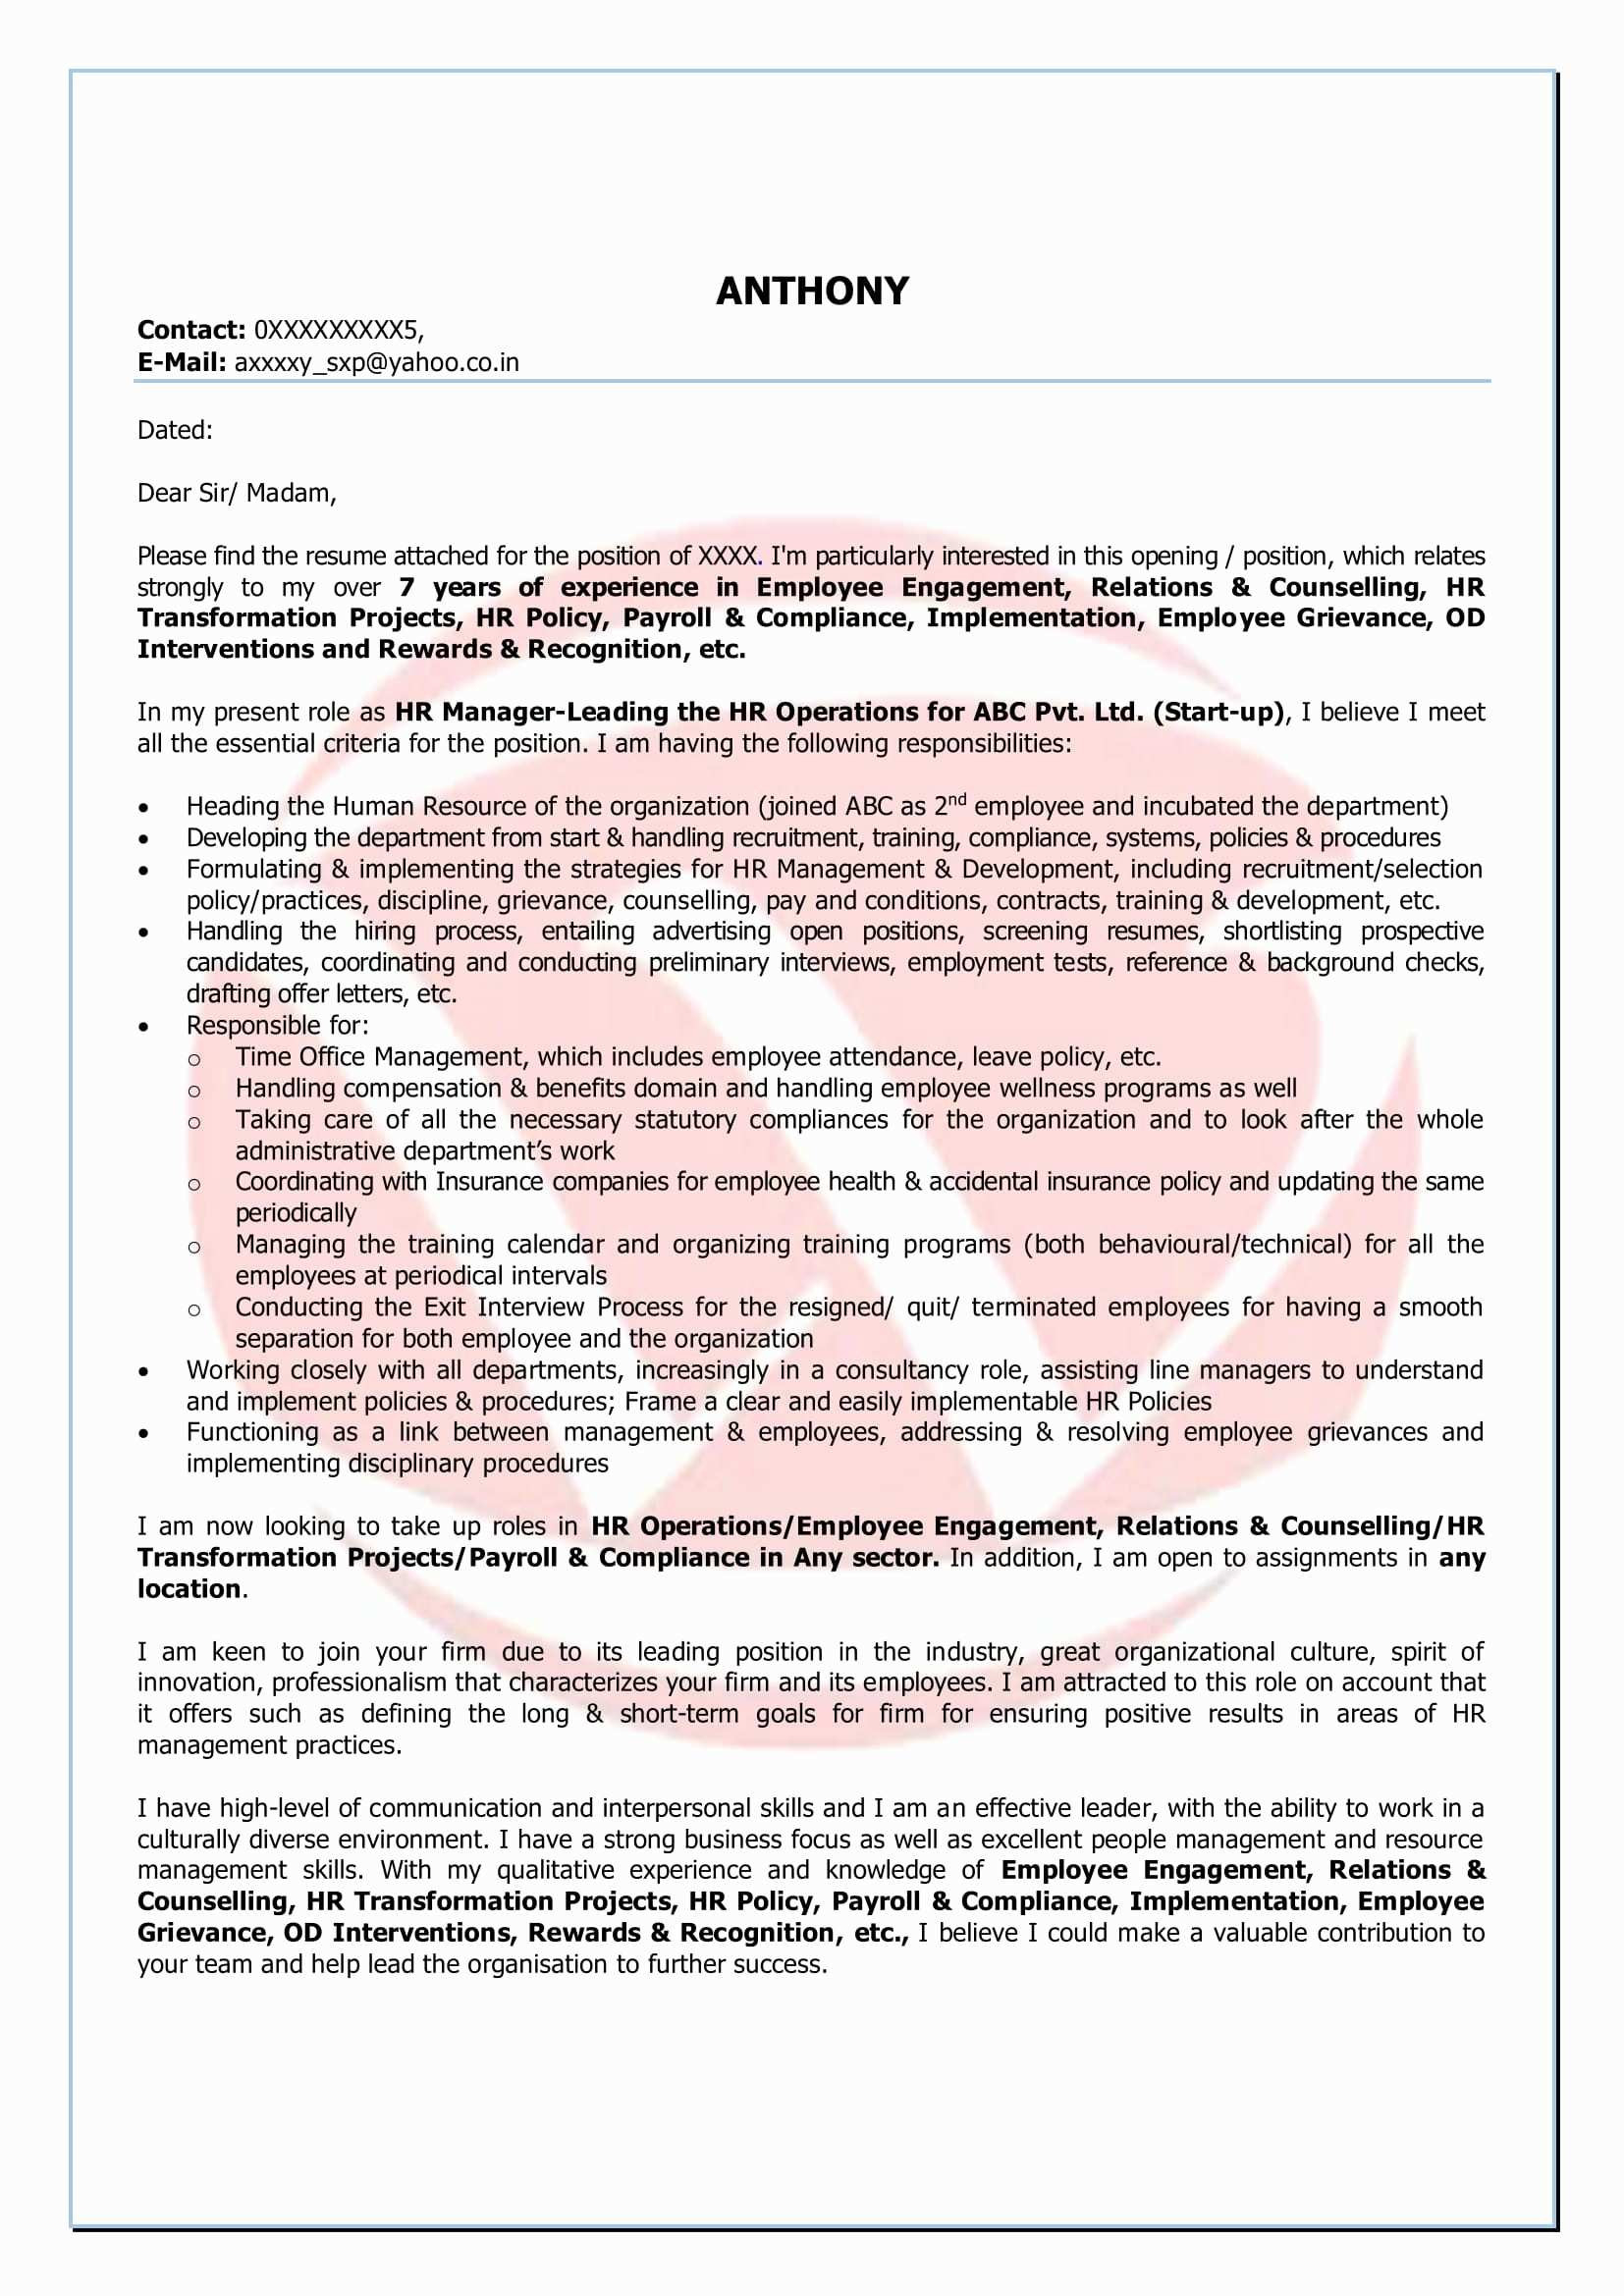 Cover Letter Template Mac - Mac Word Cover Letter Template Best 13 Luxury Job Application